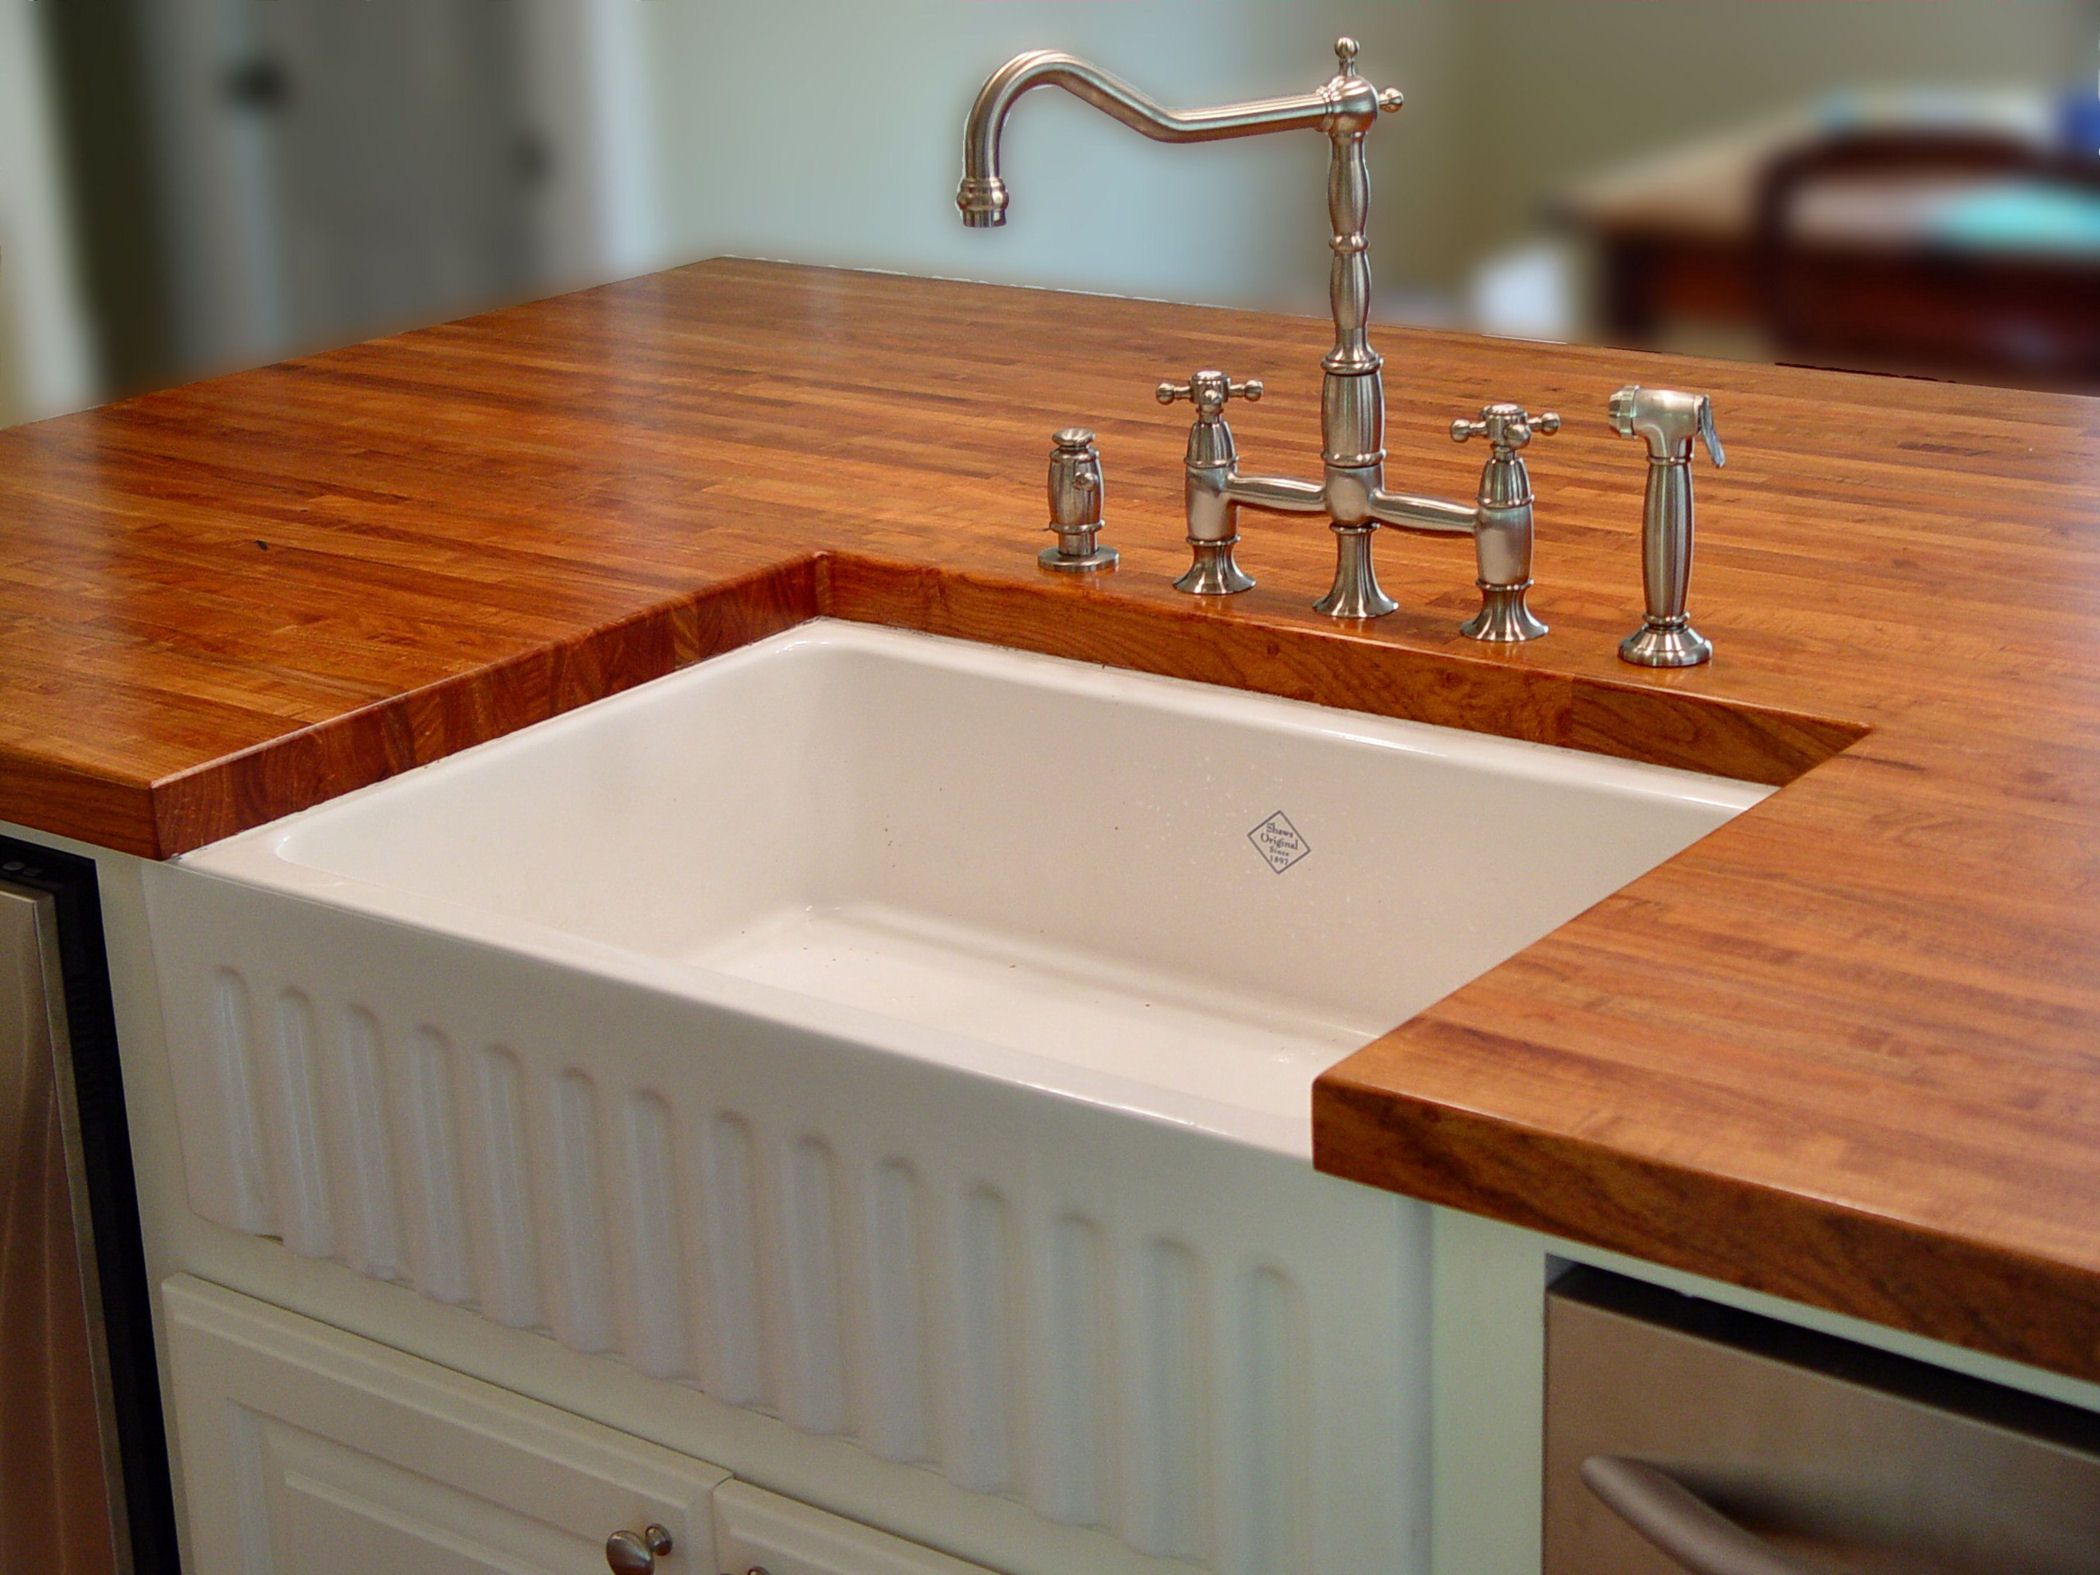 Sink Cutouts in Custom Wood Countertops on butcher block countertop marble, butcher block countertop bathroom, butcher block countertop laundry,